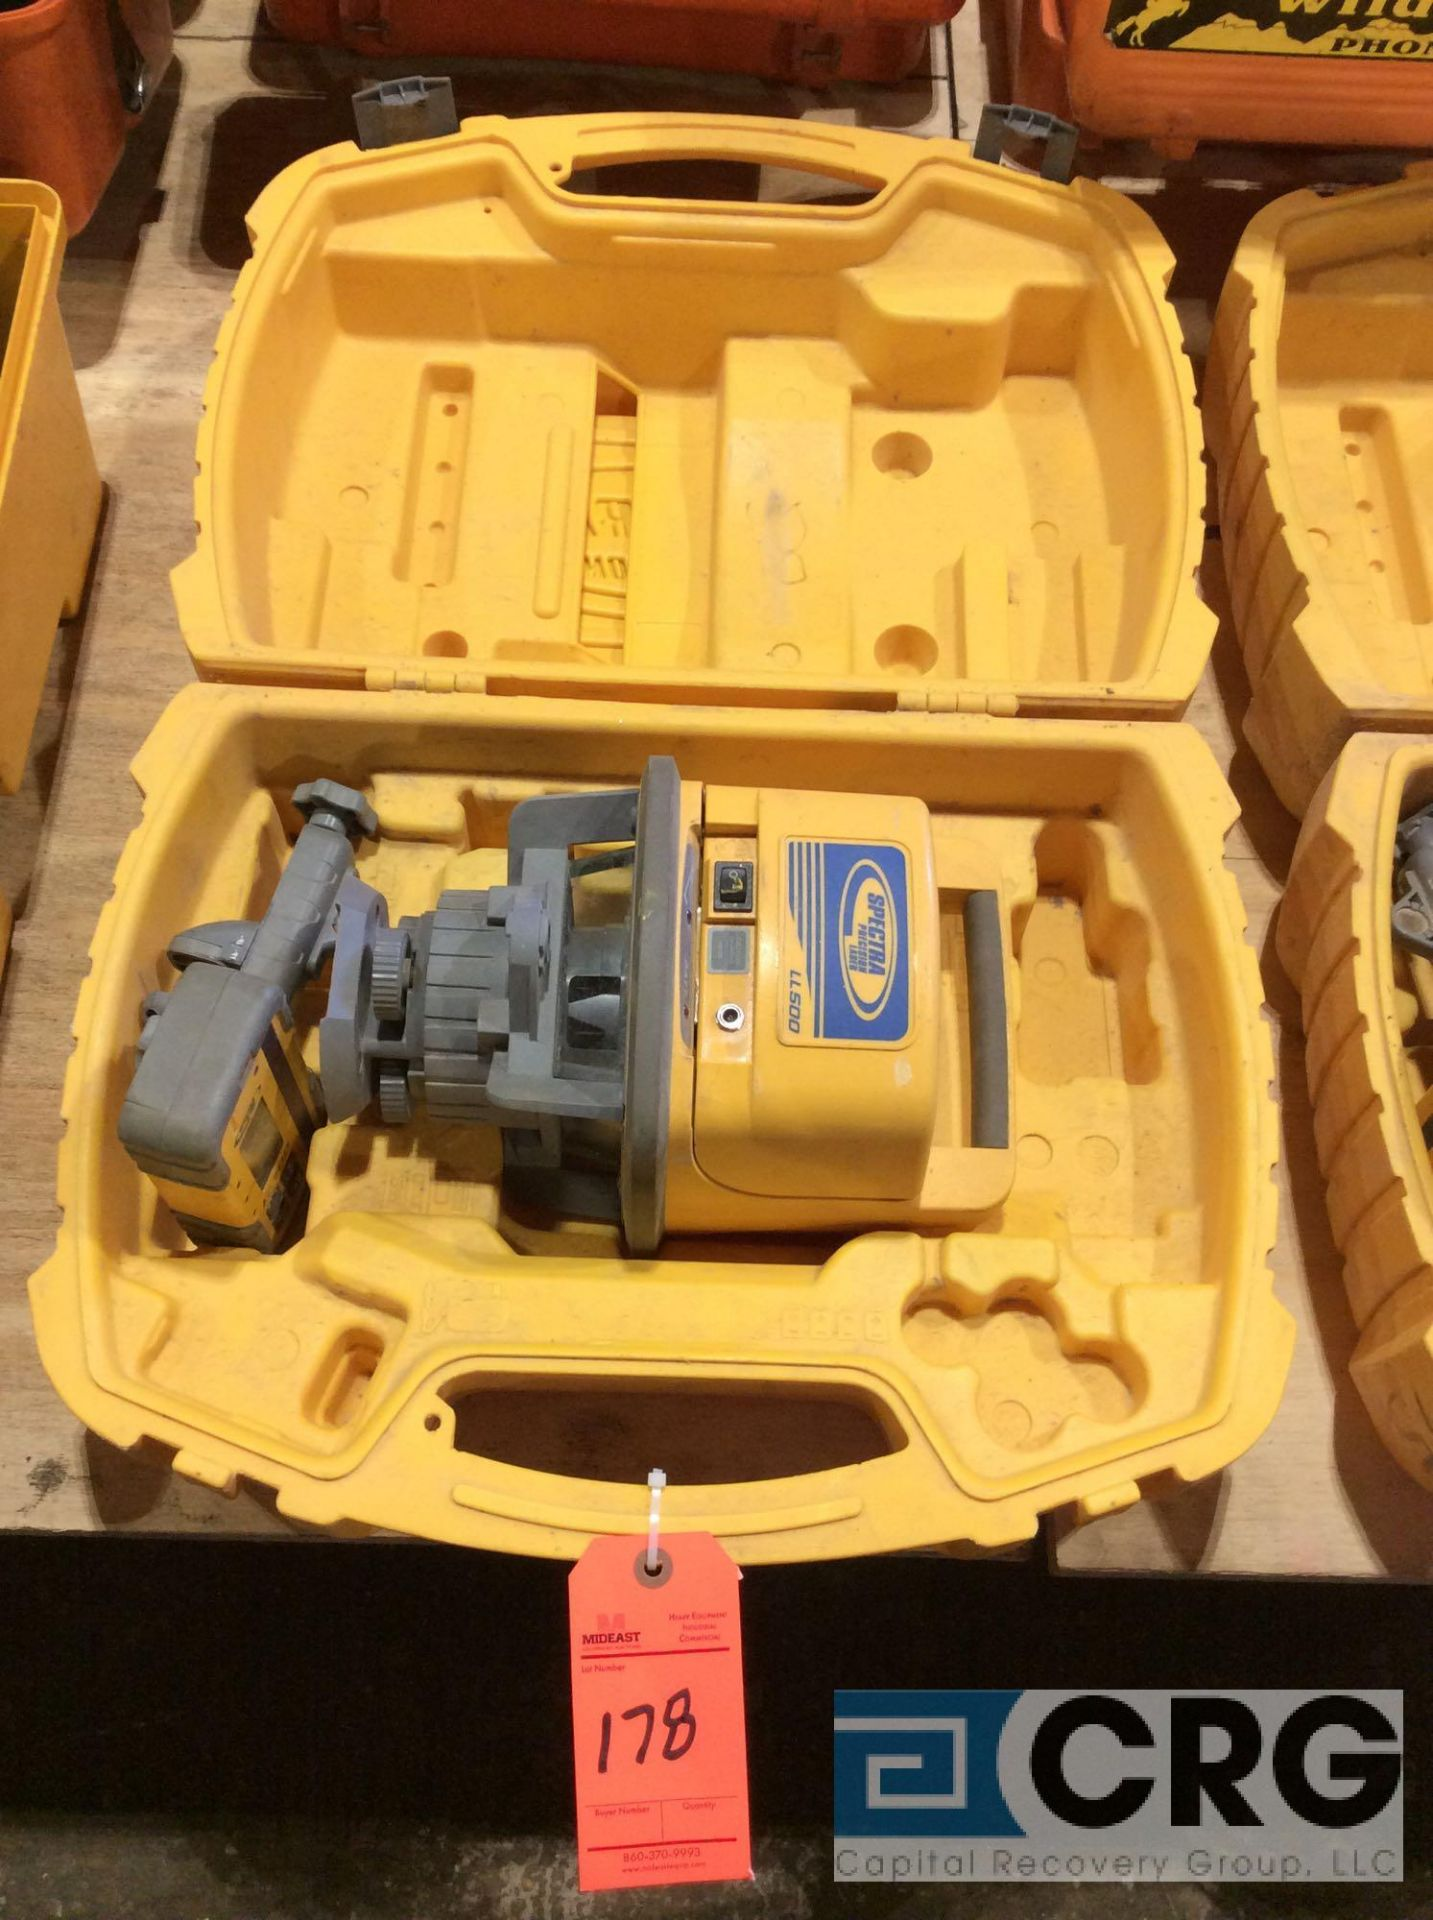 Lot 178 - Trimble LL500 Spectra Precision laser transmitter with case